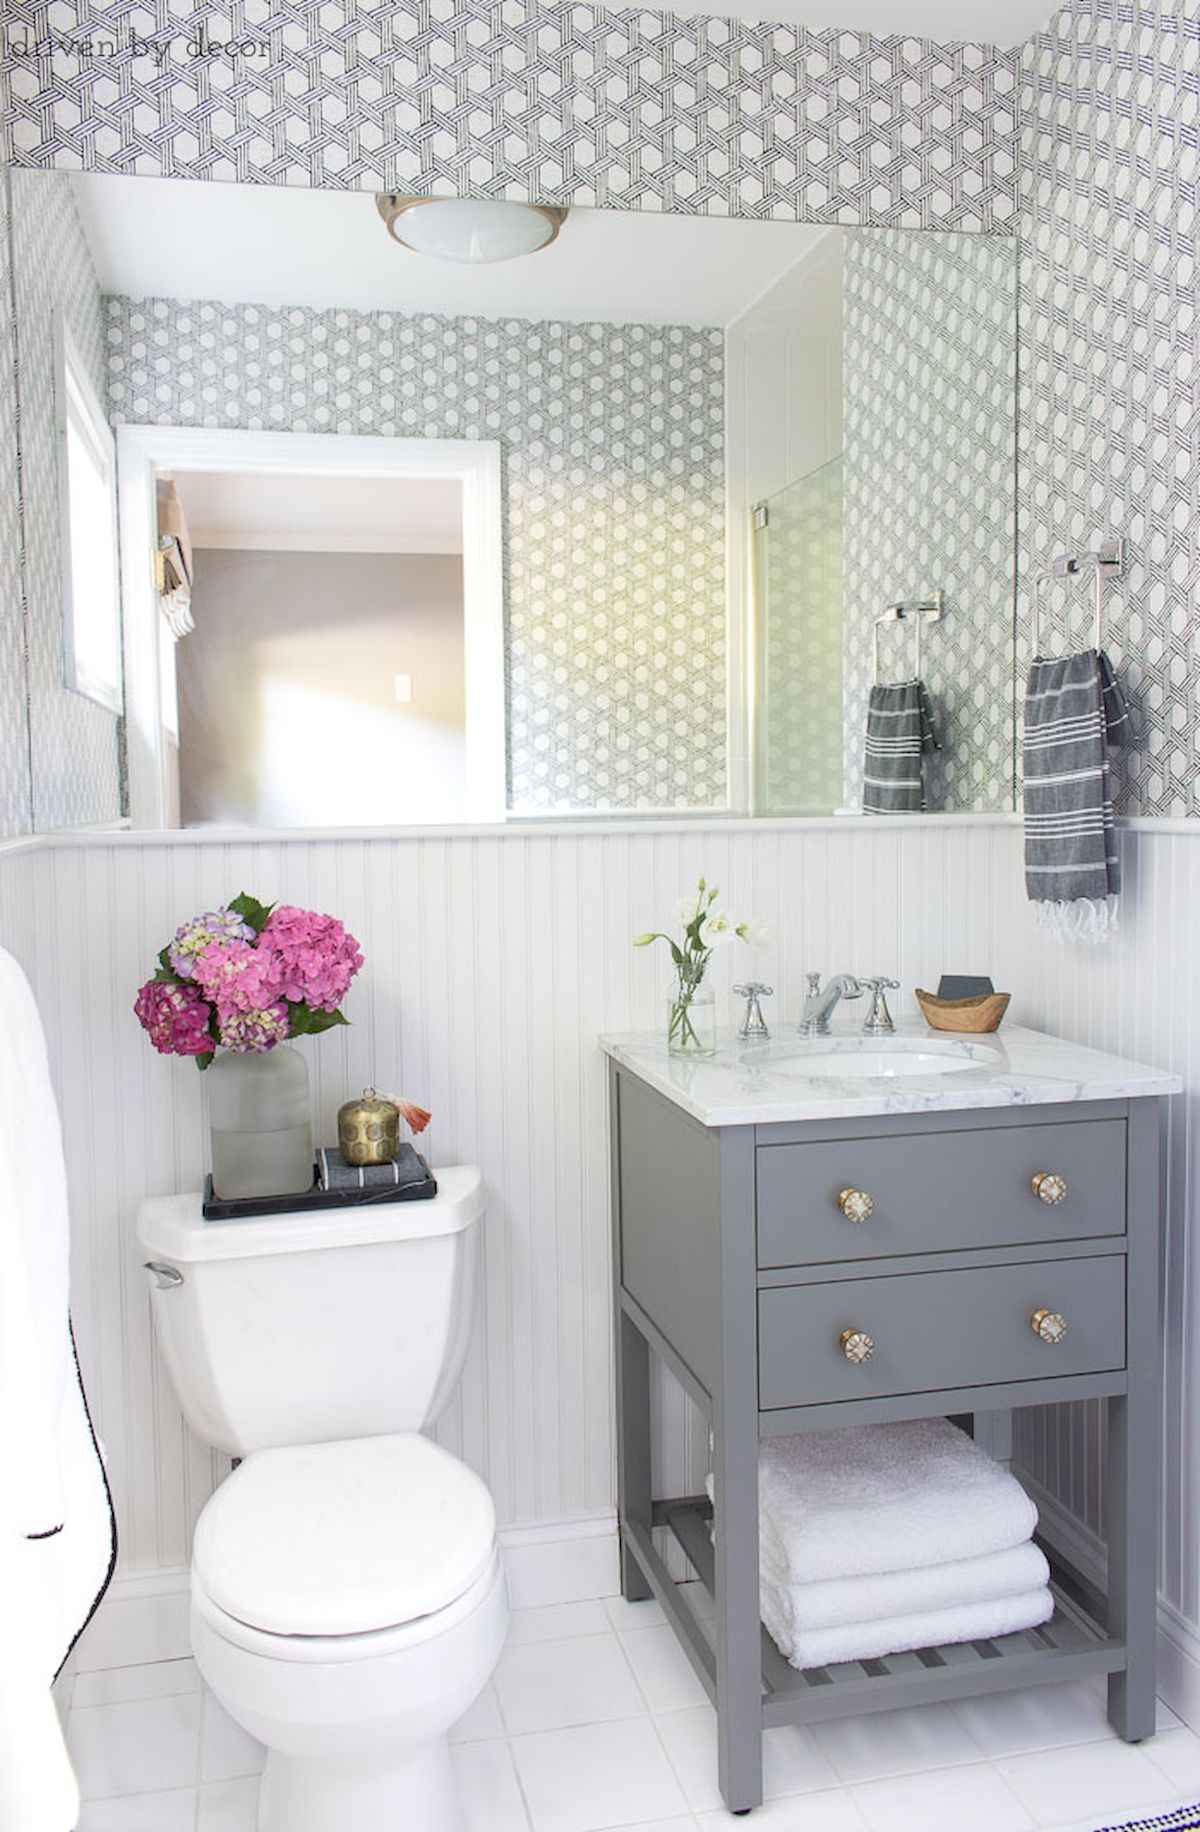 50 Small Guest Bathroom Ideas Decorations And Remodel (40)